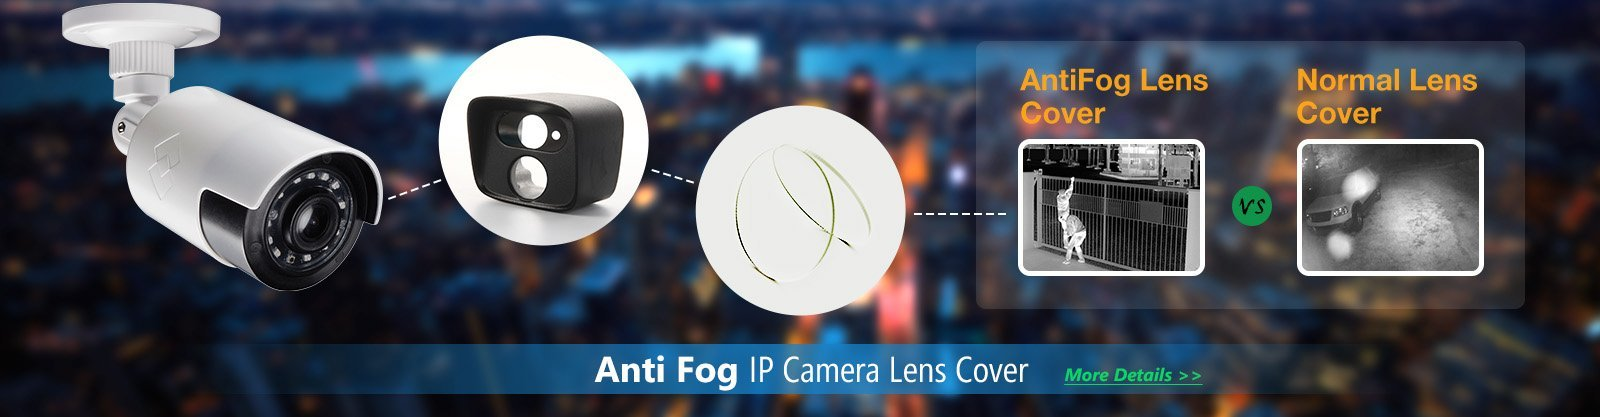 IP-Camera-AntiFogLens-01